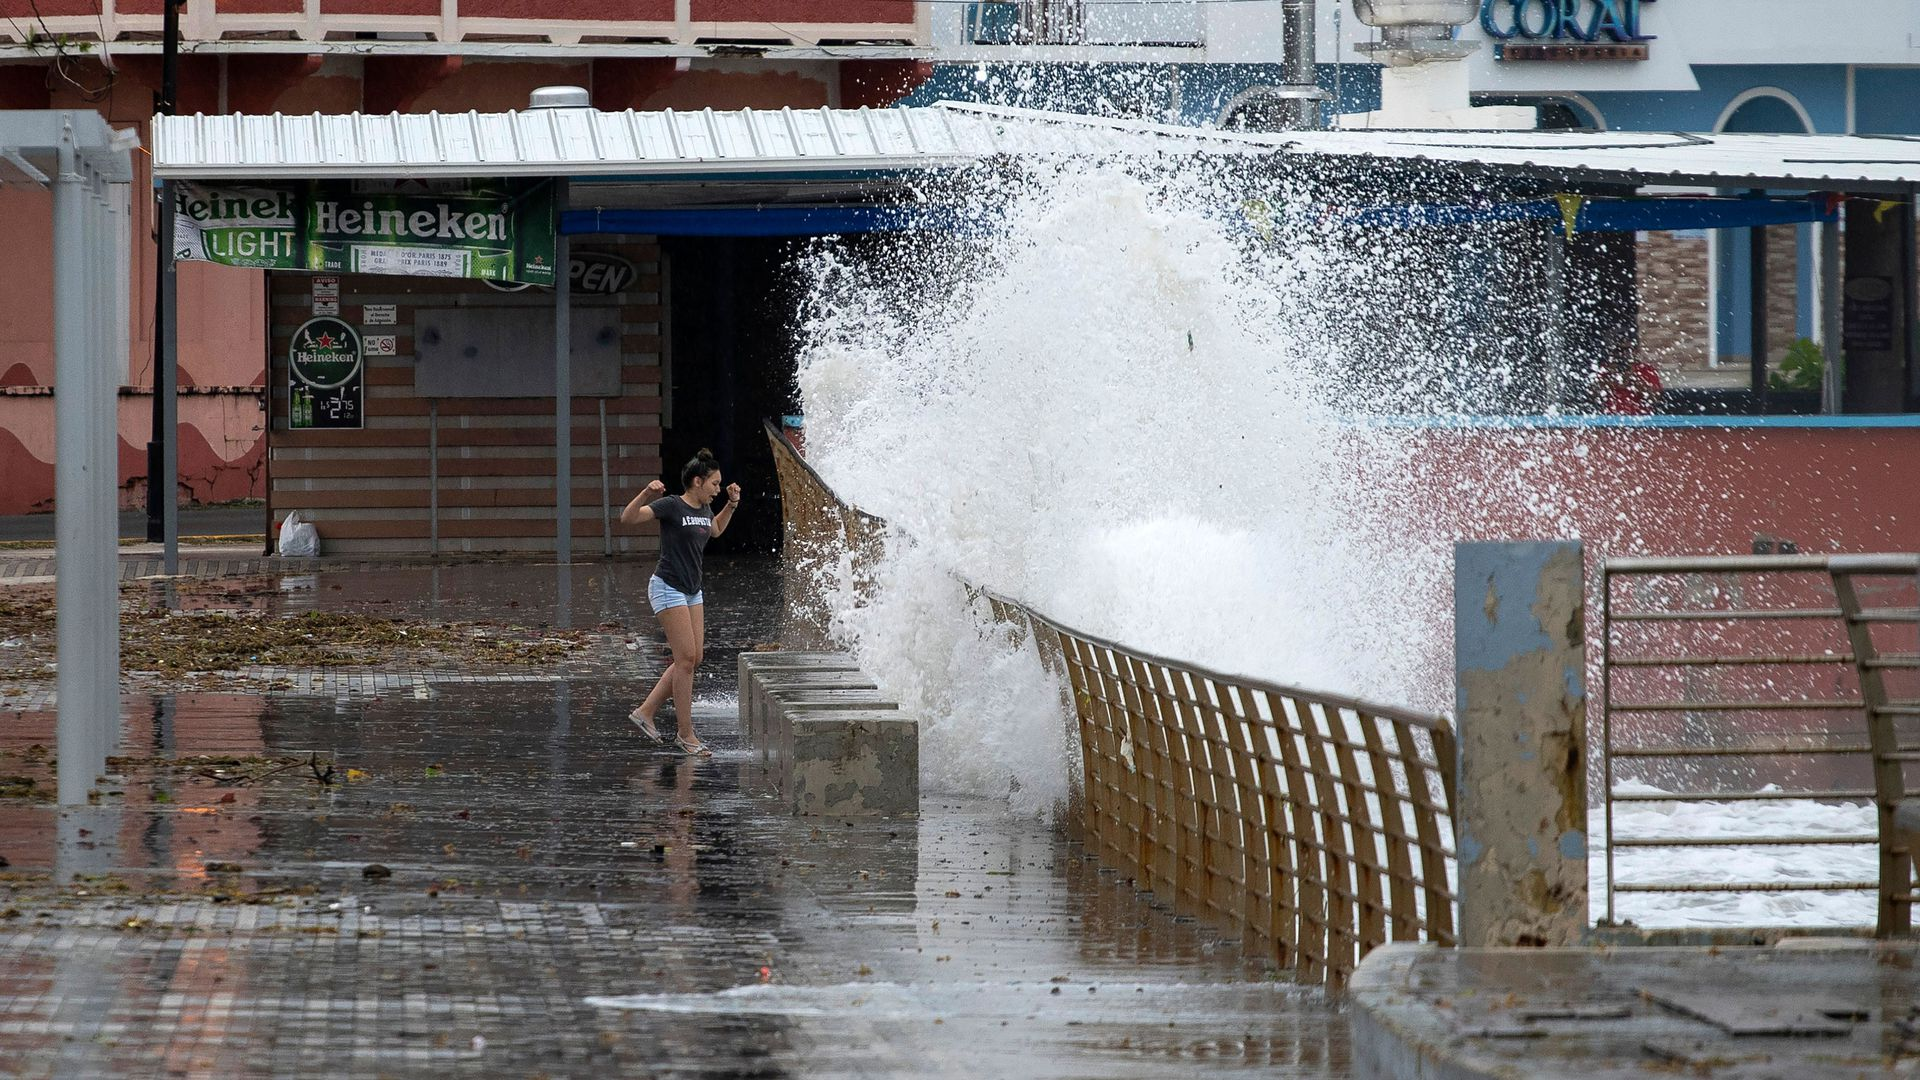 A woman walks next to the coast as tropical Storm Karen approaches in Naguabo, Puerto Rico, on September 24